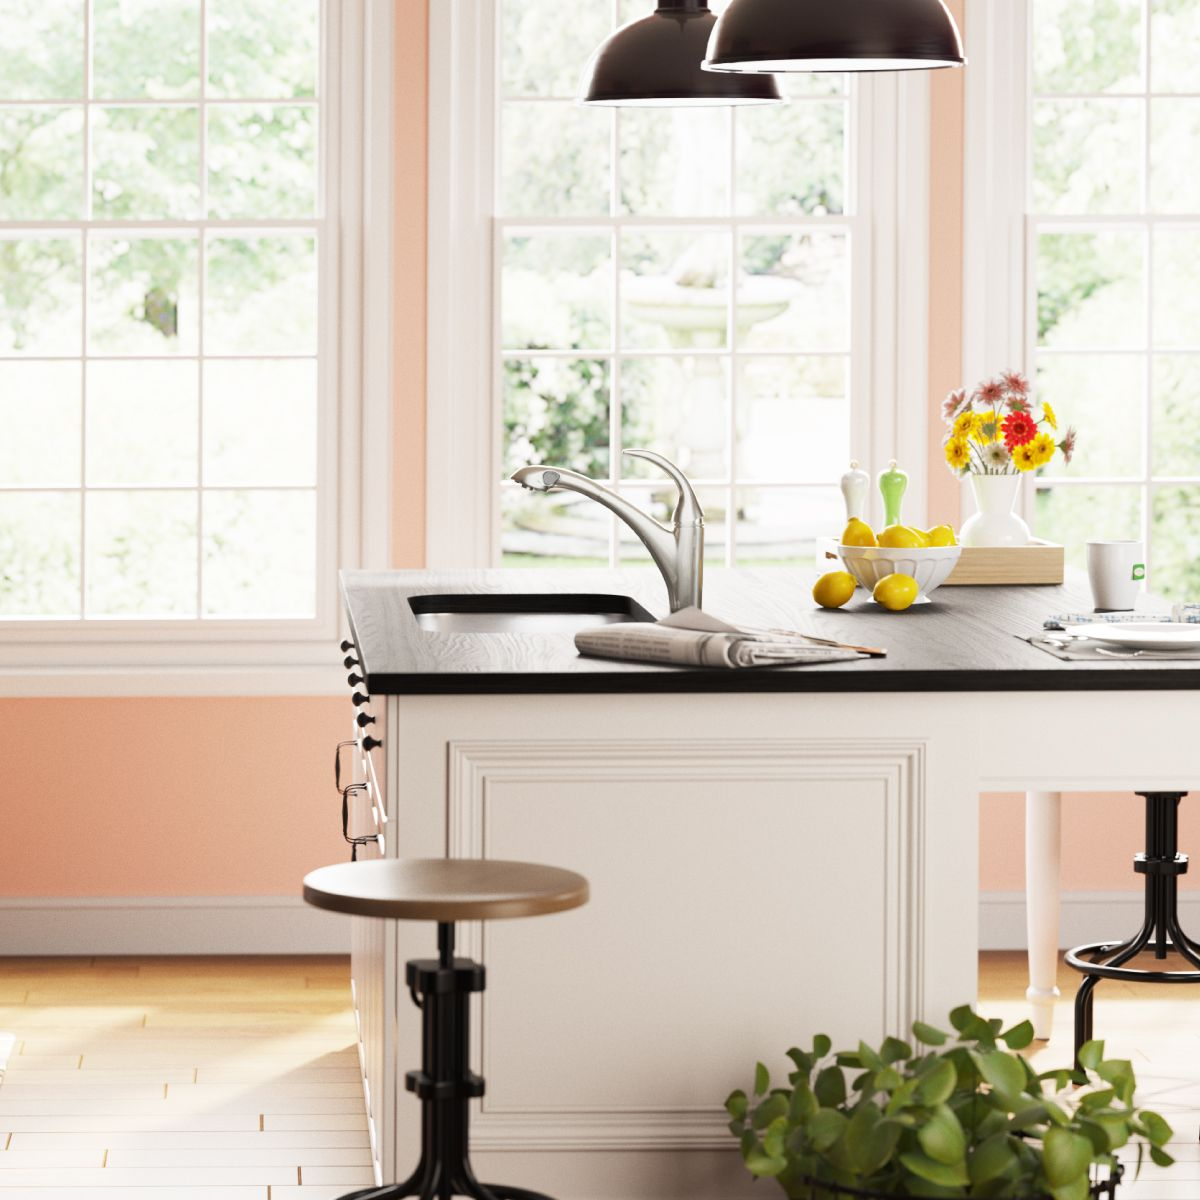 Filled with natural light, this kitchen is the